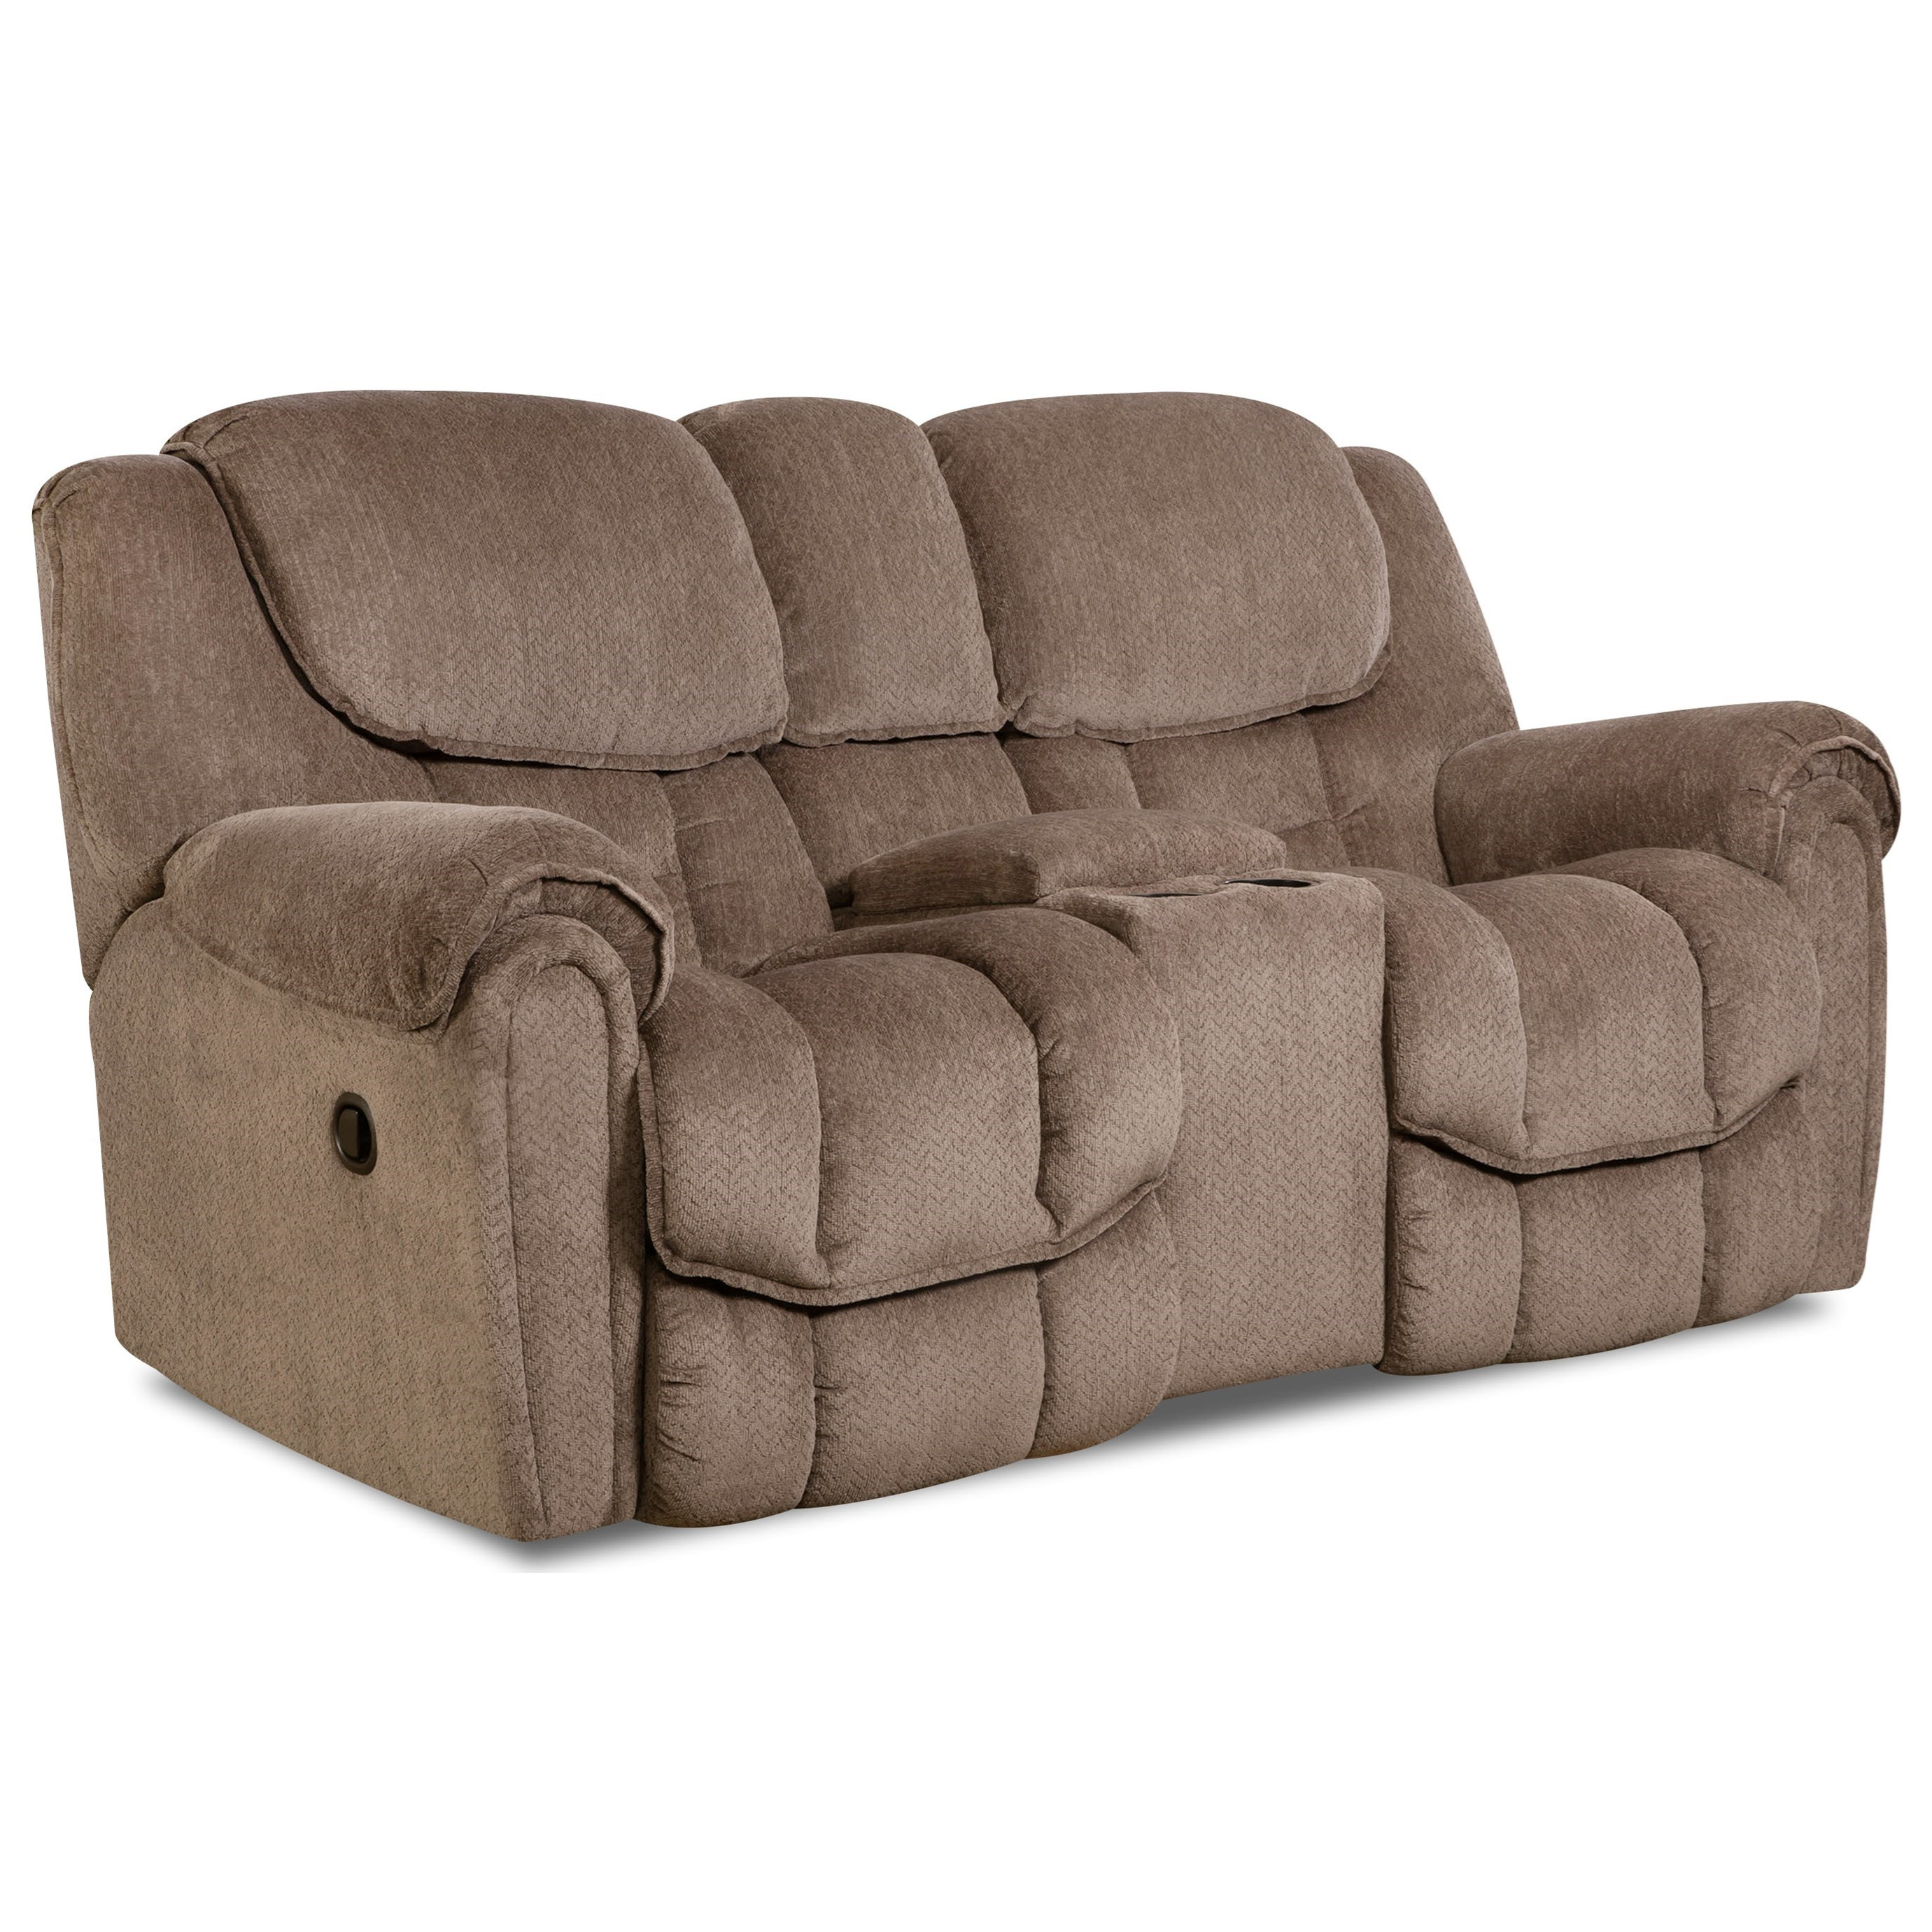 122 Casual Power Reclining Loveseat by HomeStretch at Bullard Furniture